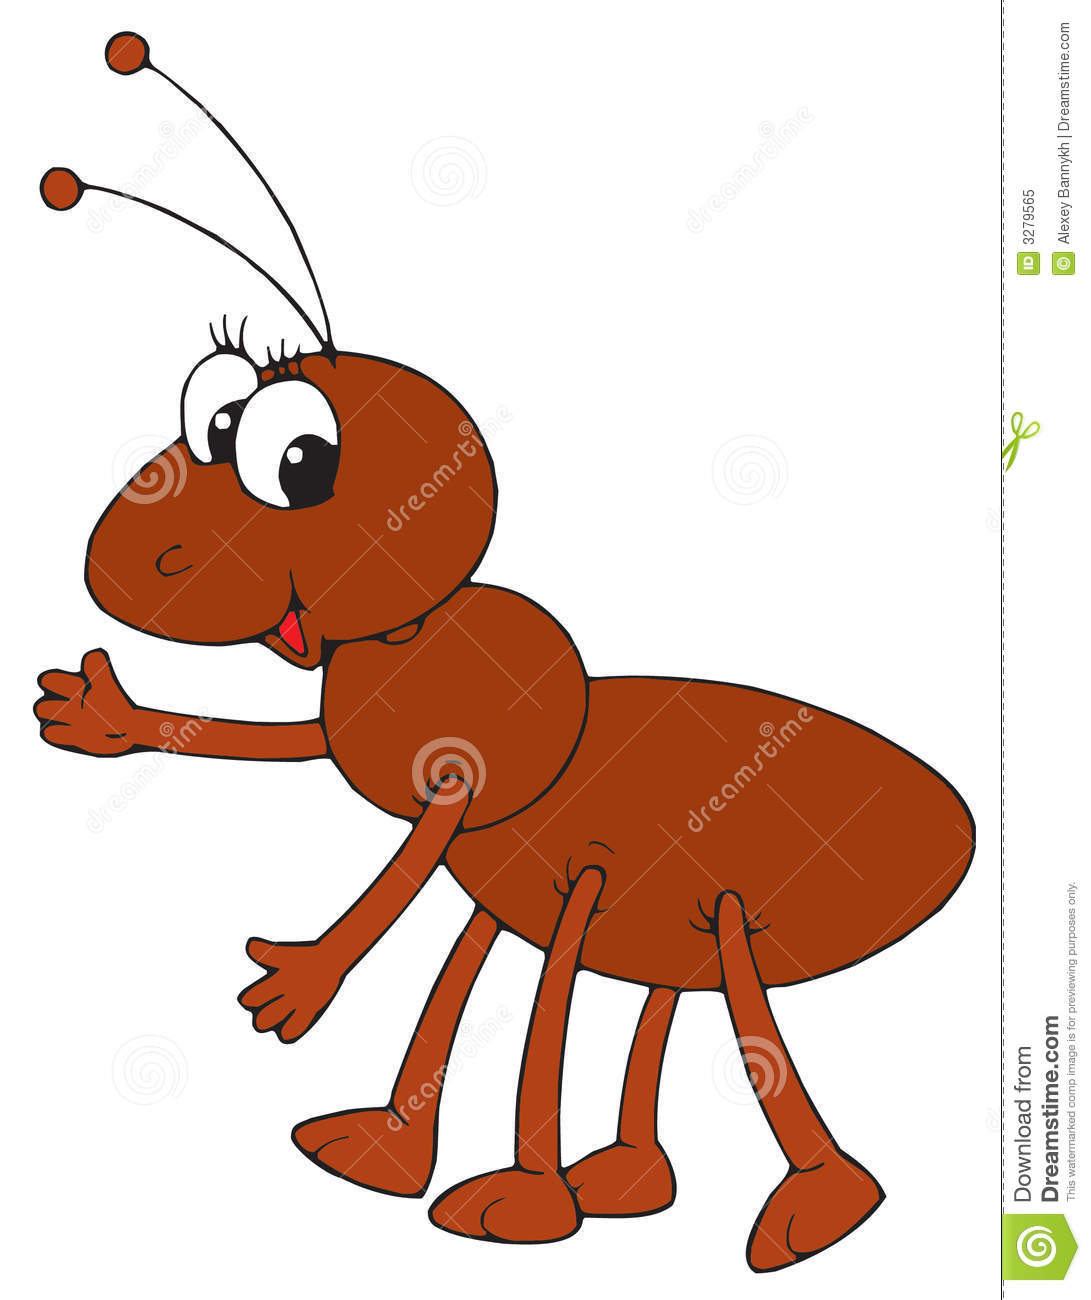 Ants clipart teamwork. Ant team free pnglogocoloring